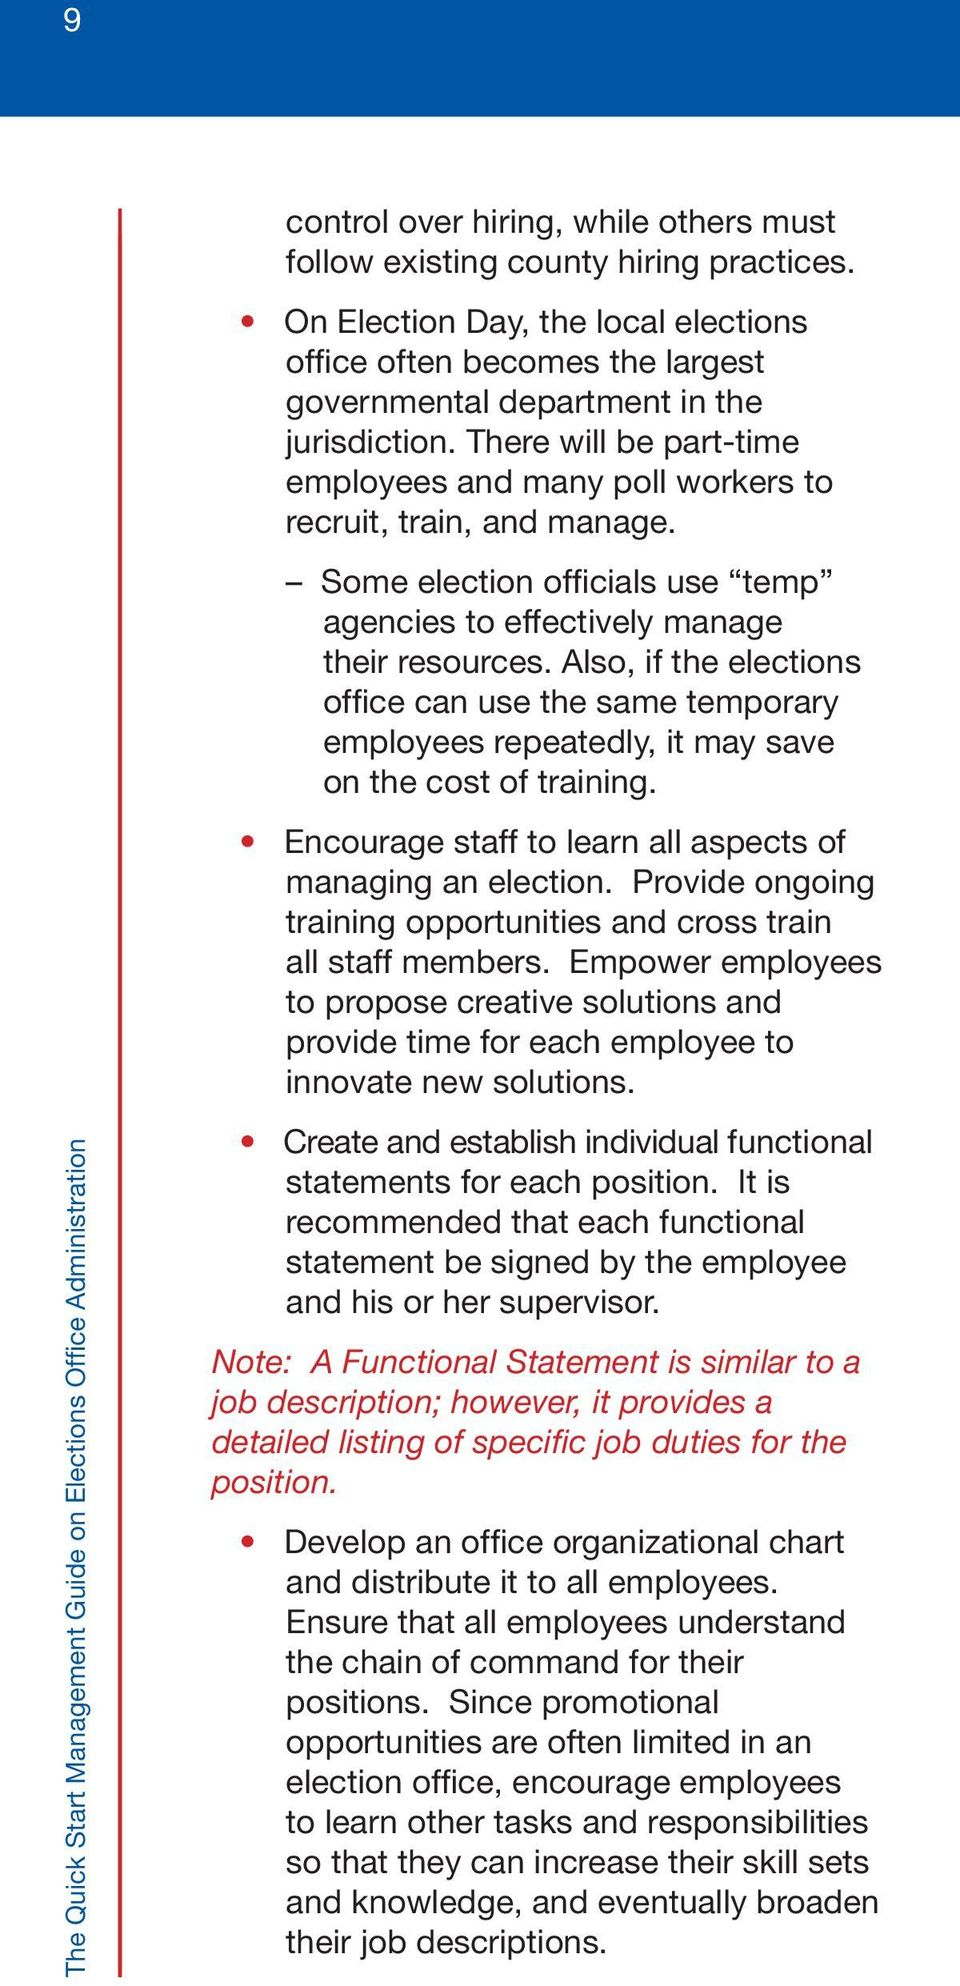 There will be part-time employees and many poll workers to recruit, train, and manage. Some election officials use temp agencies to effectively manage their resources.